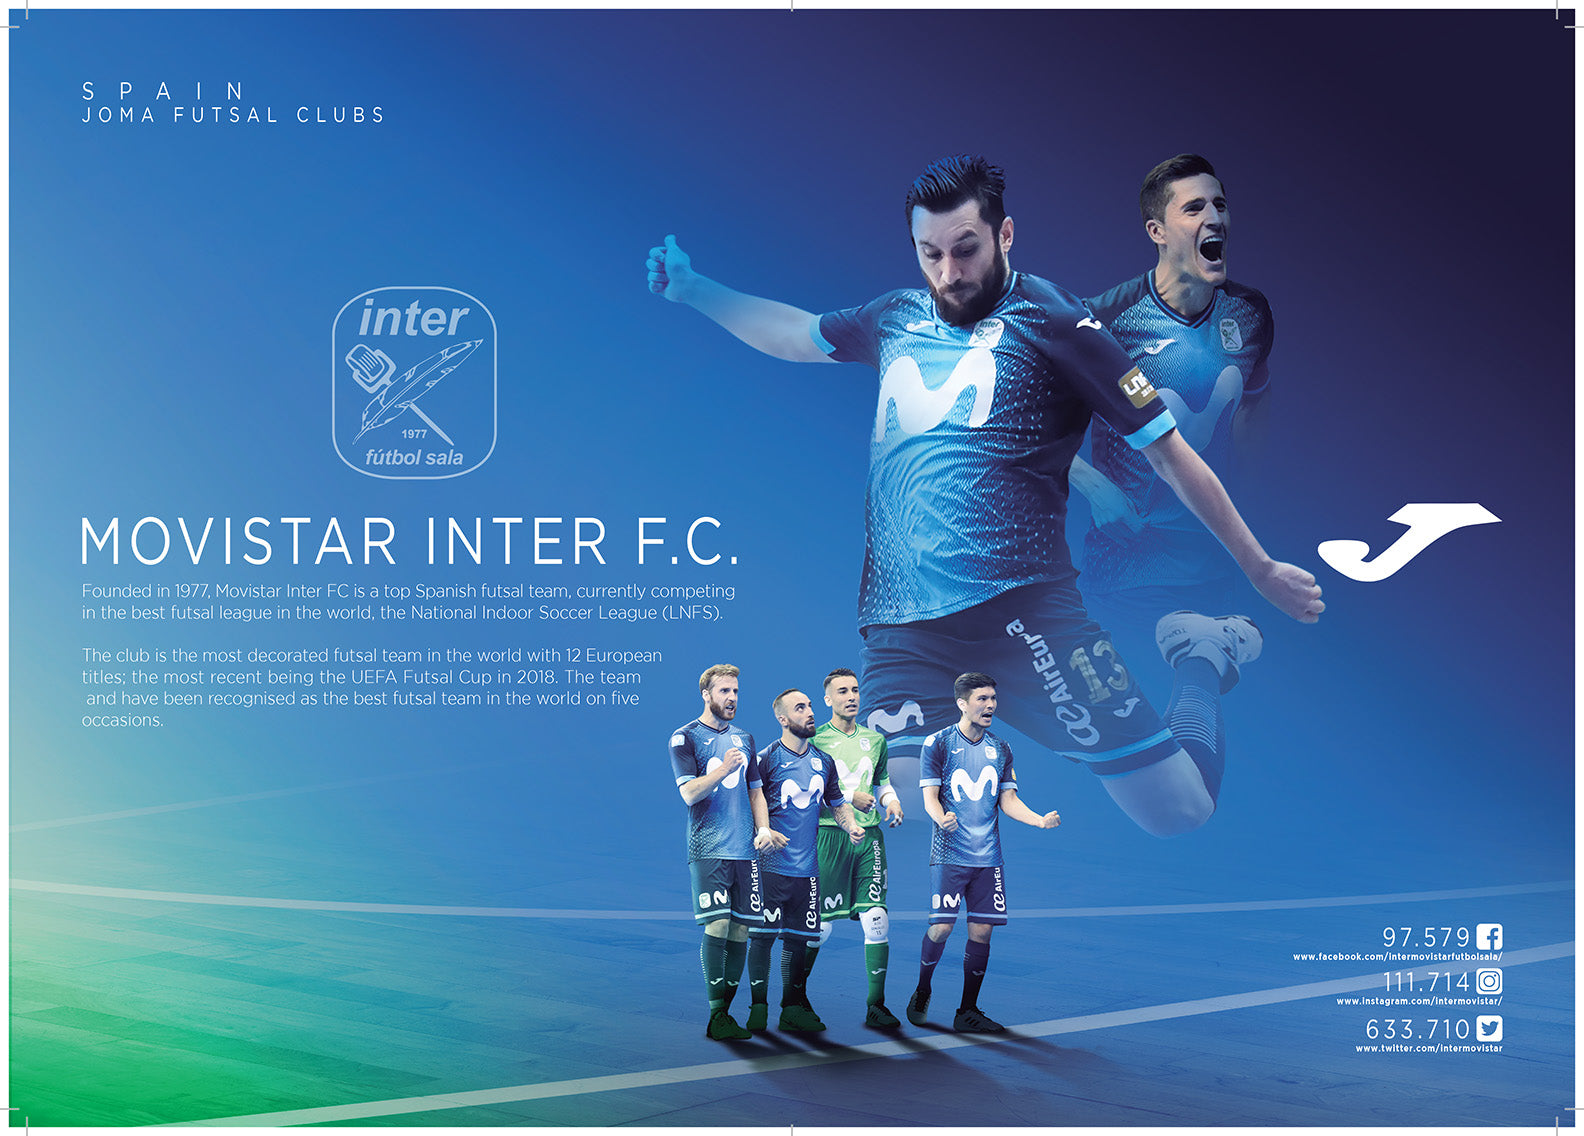 Movistar Inter FC